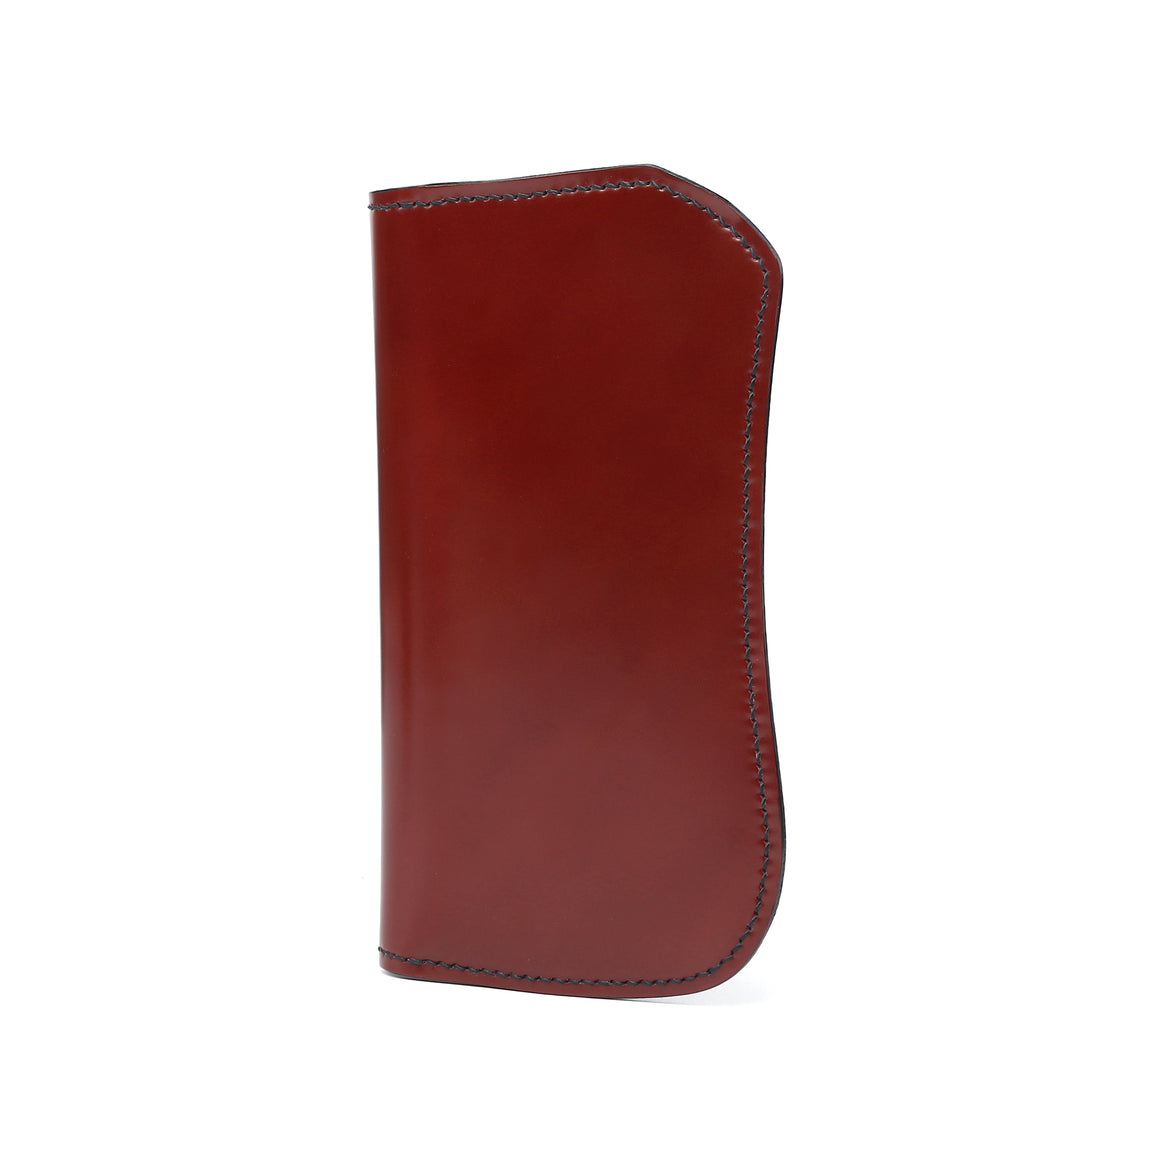 The Flat Head Semi-long Cordovan & Cowhide With Lizard quarter Wallet(Whisky)